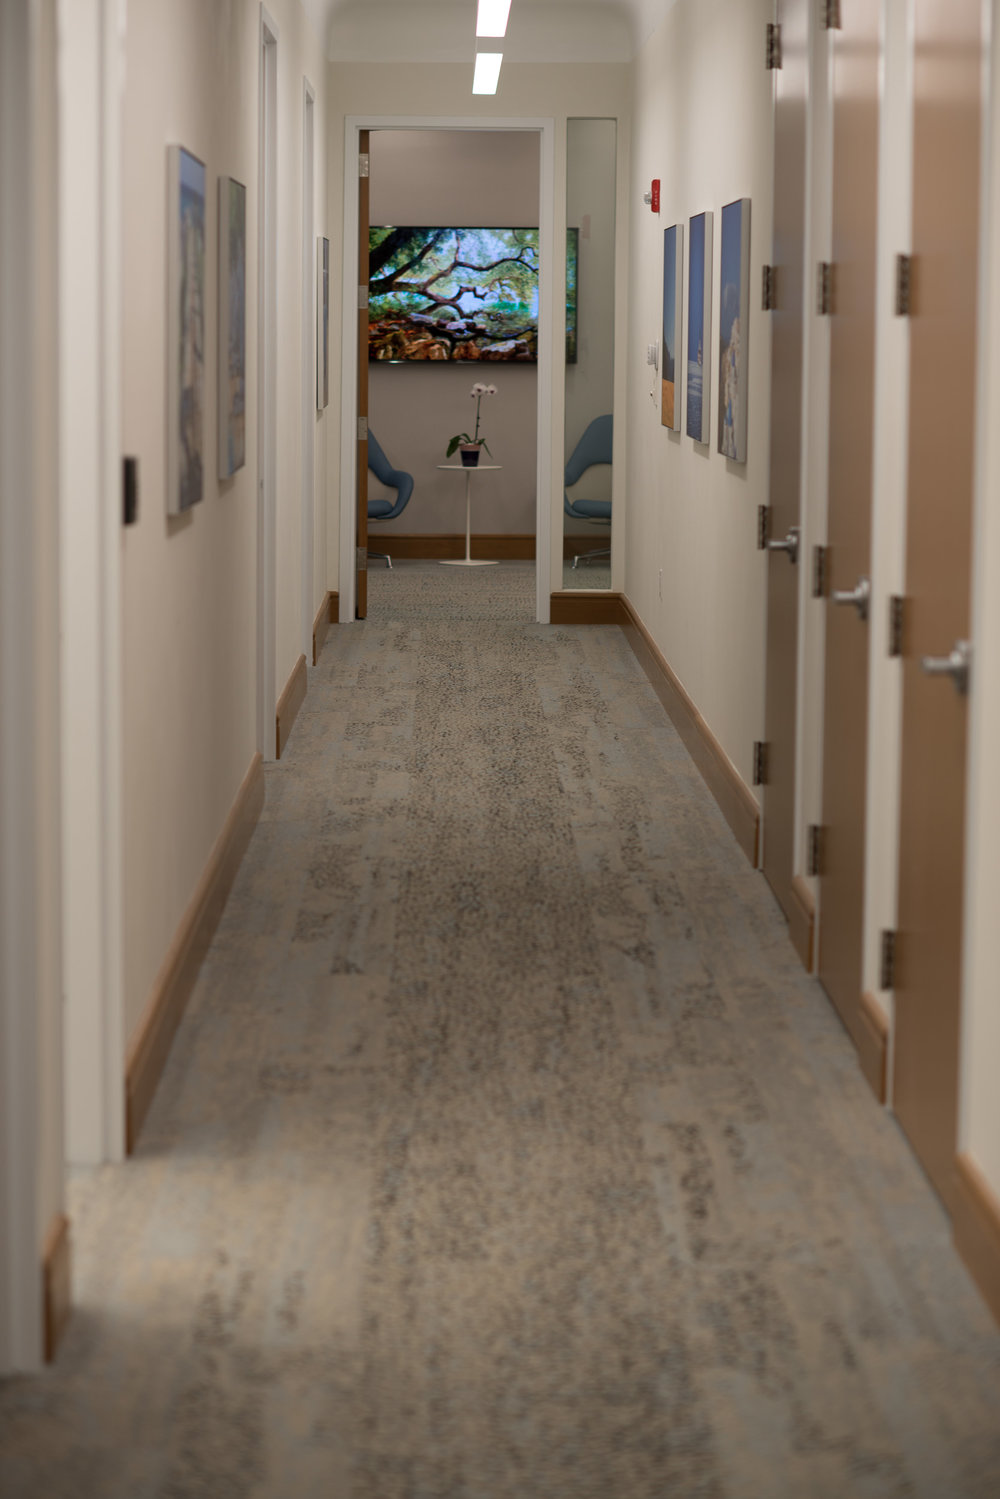 Stunning Finish Details in the Common Areas